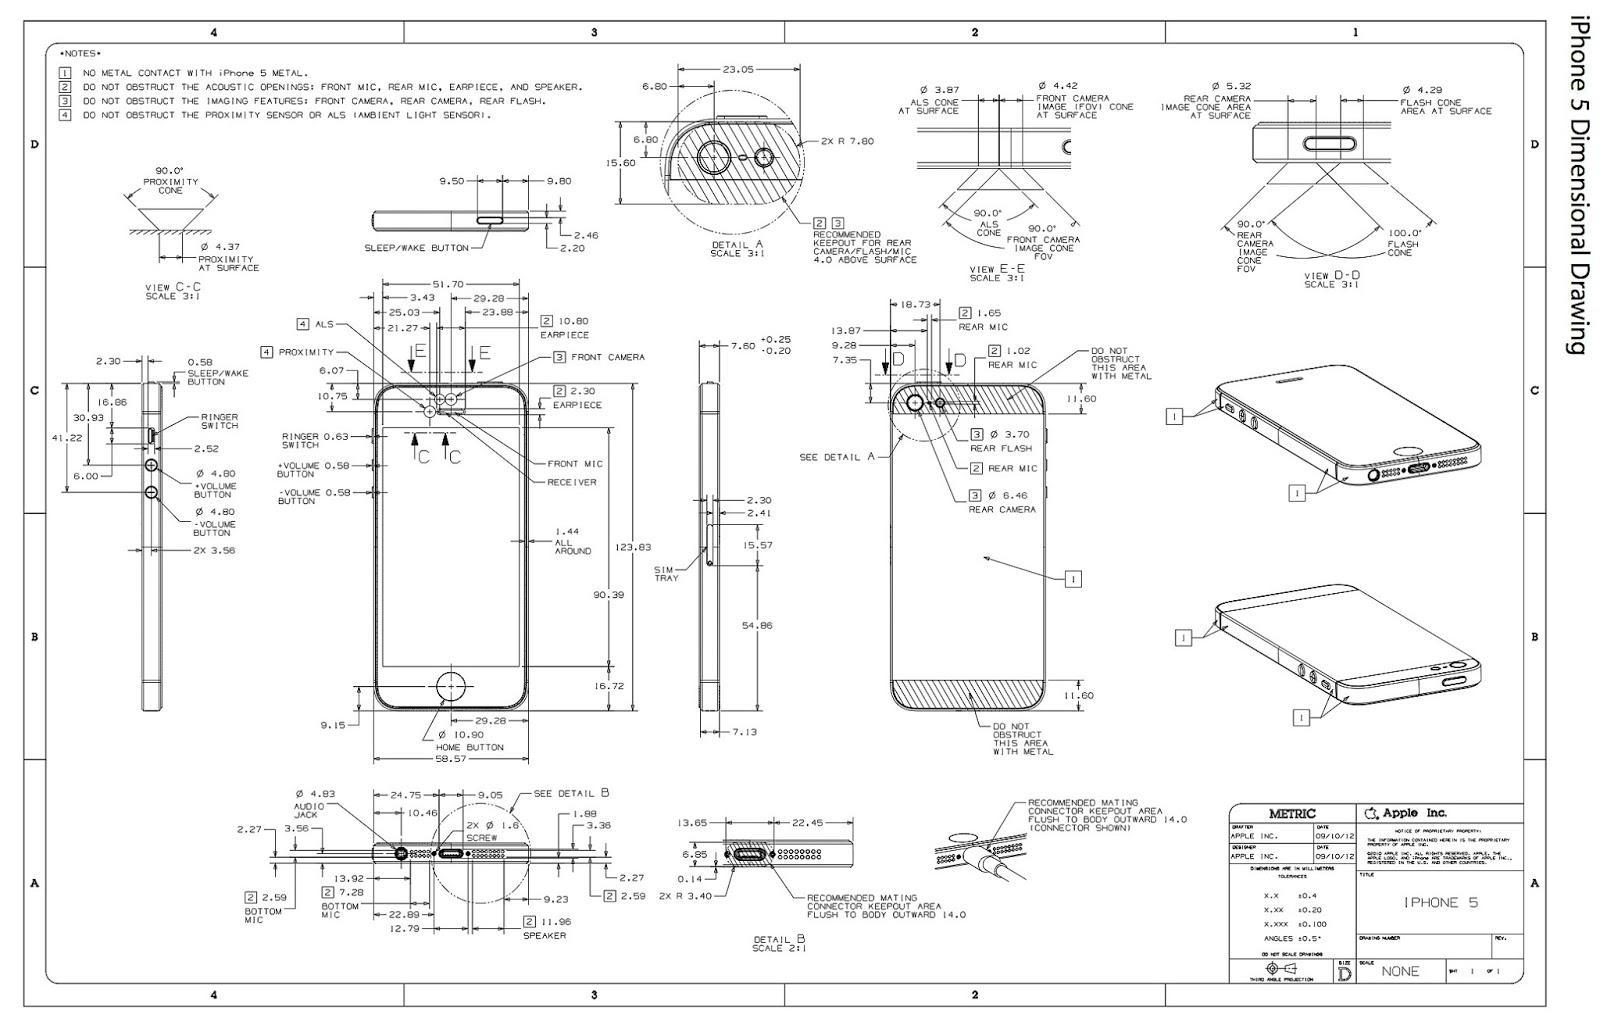 Apple Iphone 5 as well Watch together with The Apple Iphone 5s Camera And further Iphone 6 Ship Remember Remember 9th September also Chemical Breakdown What Really Goes New IPhone. on iphone 5c schematic